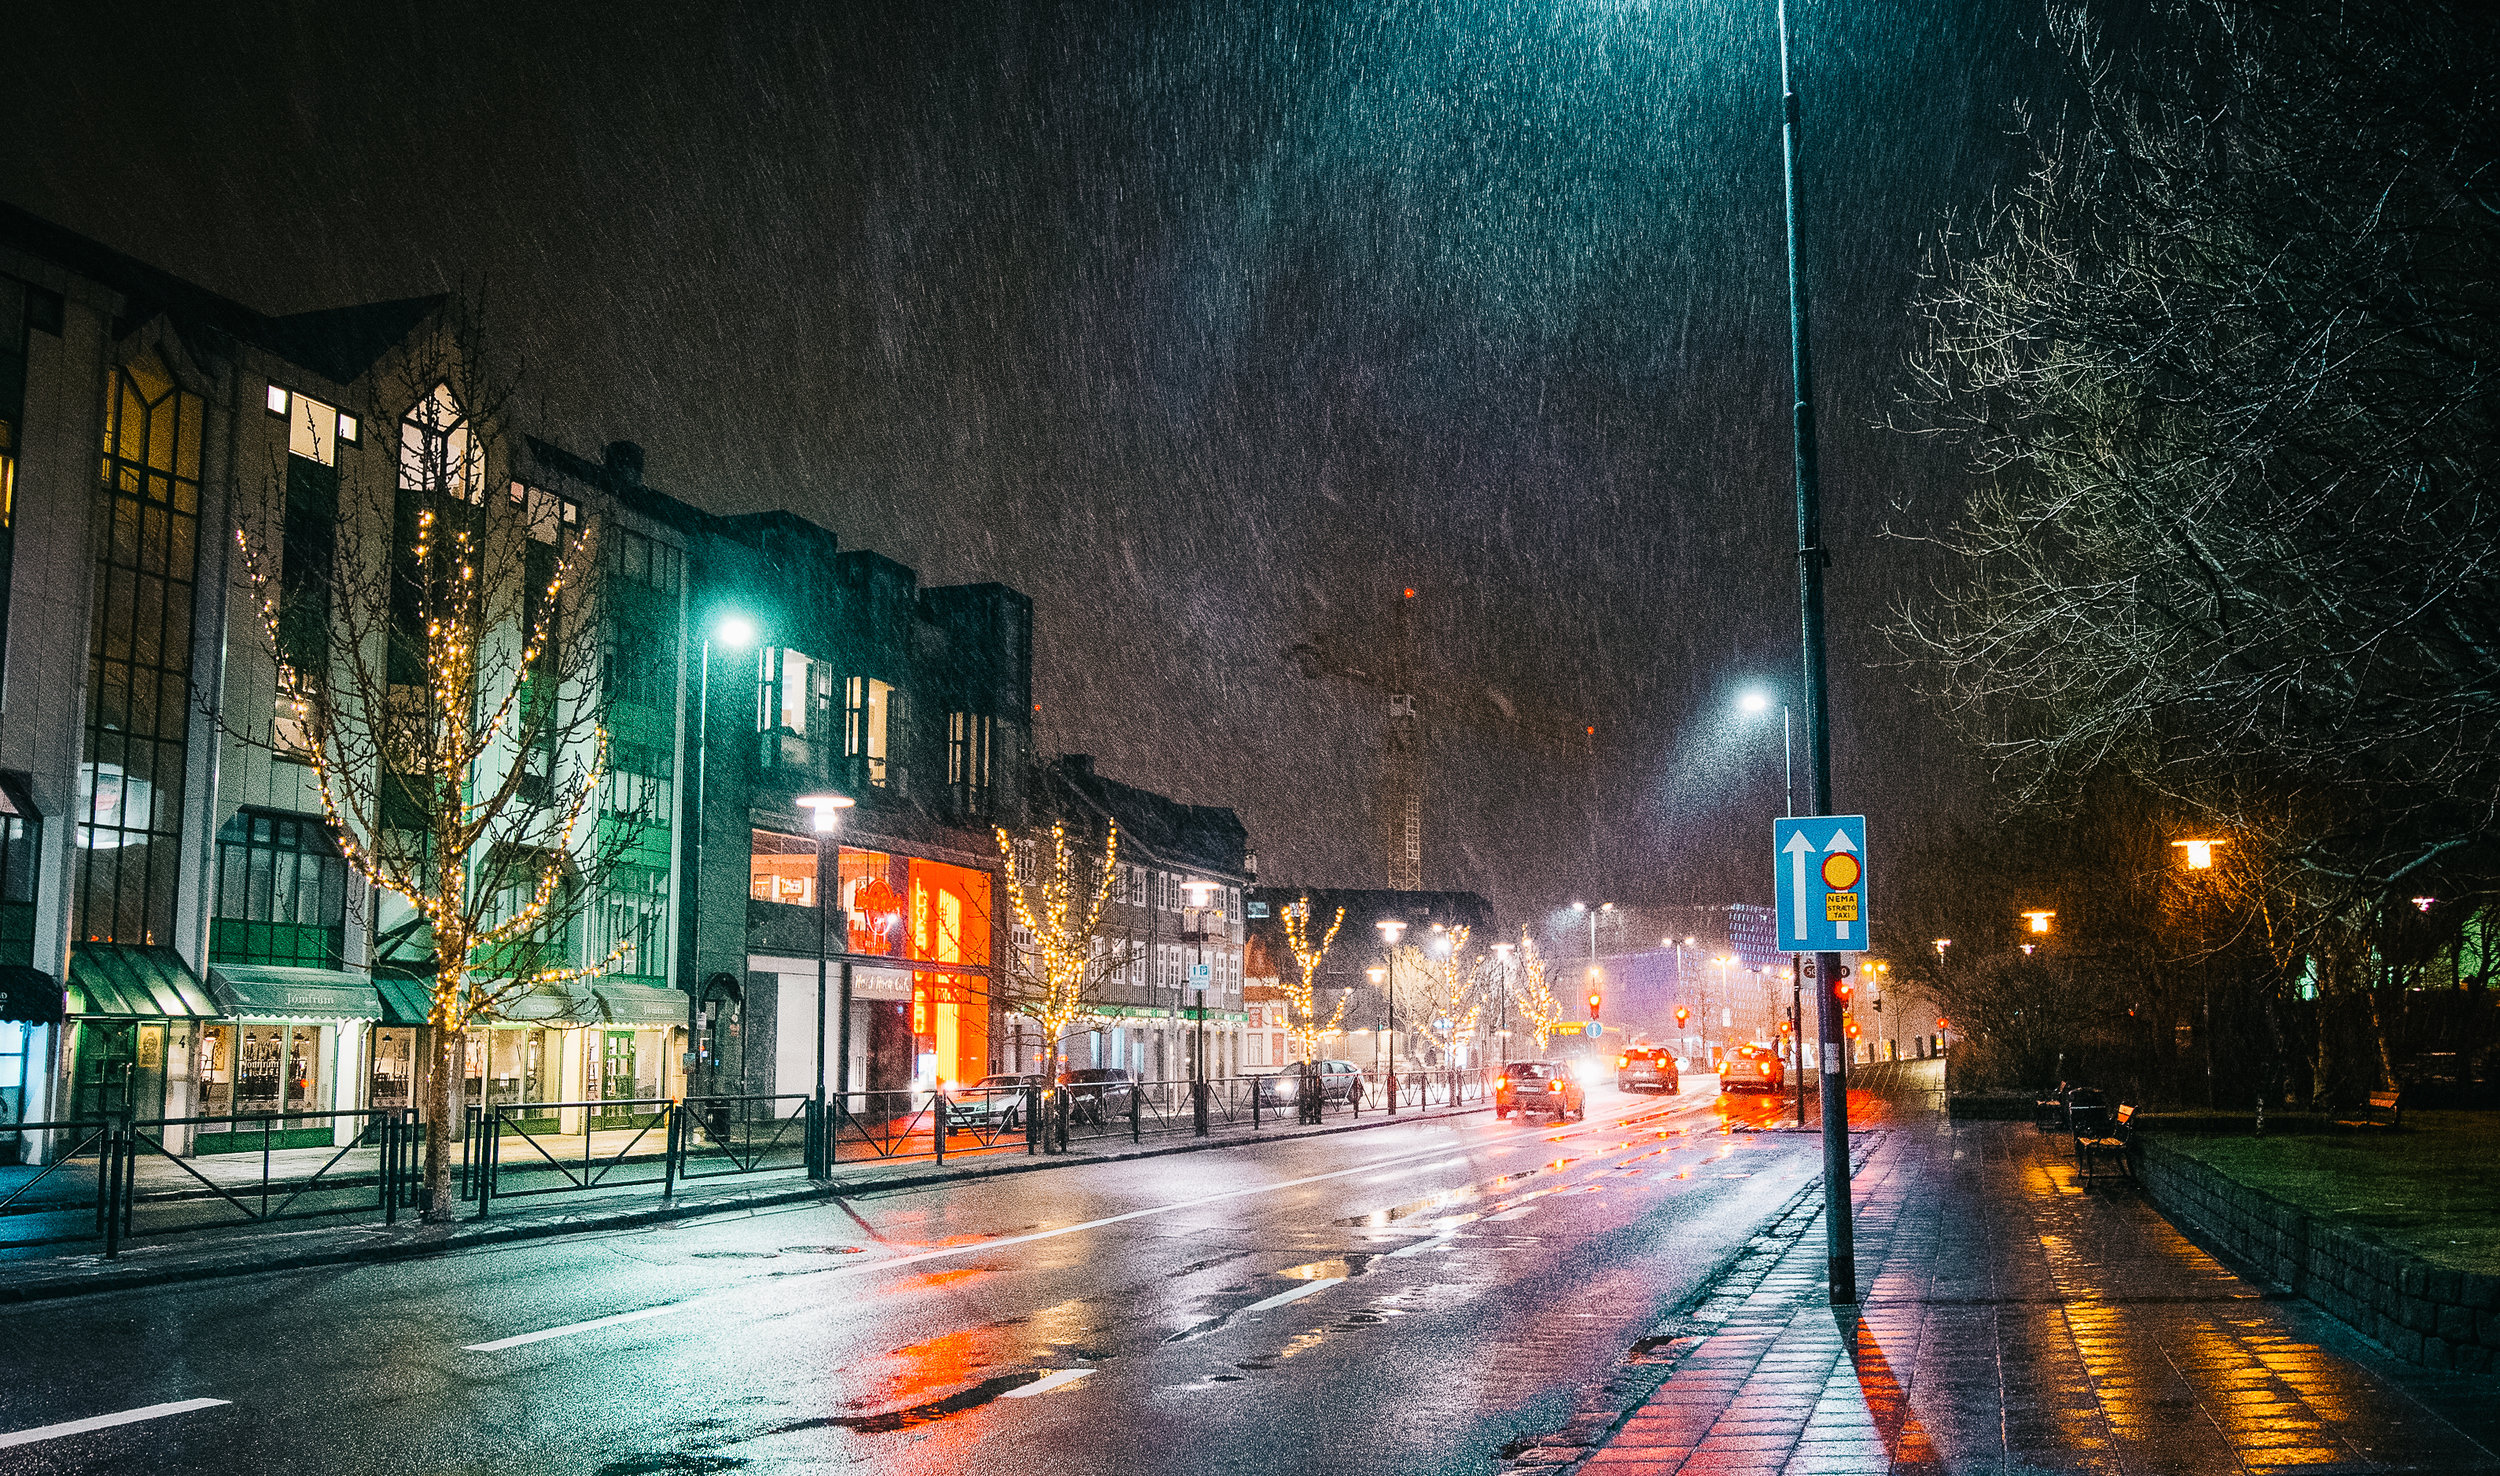 A solo walk in a sleet storm at night.